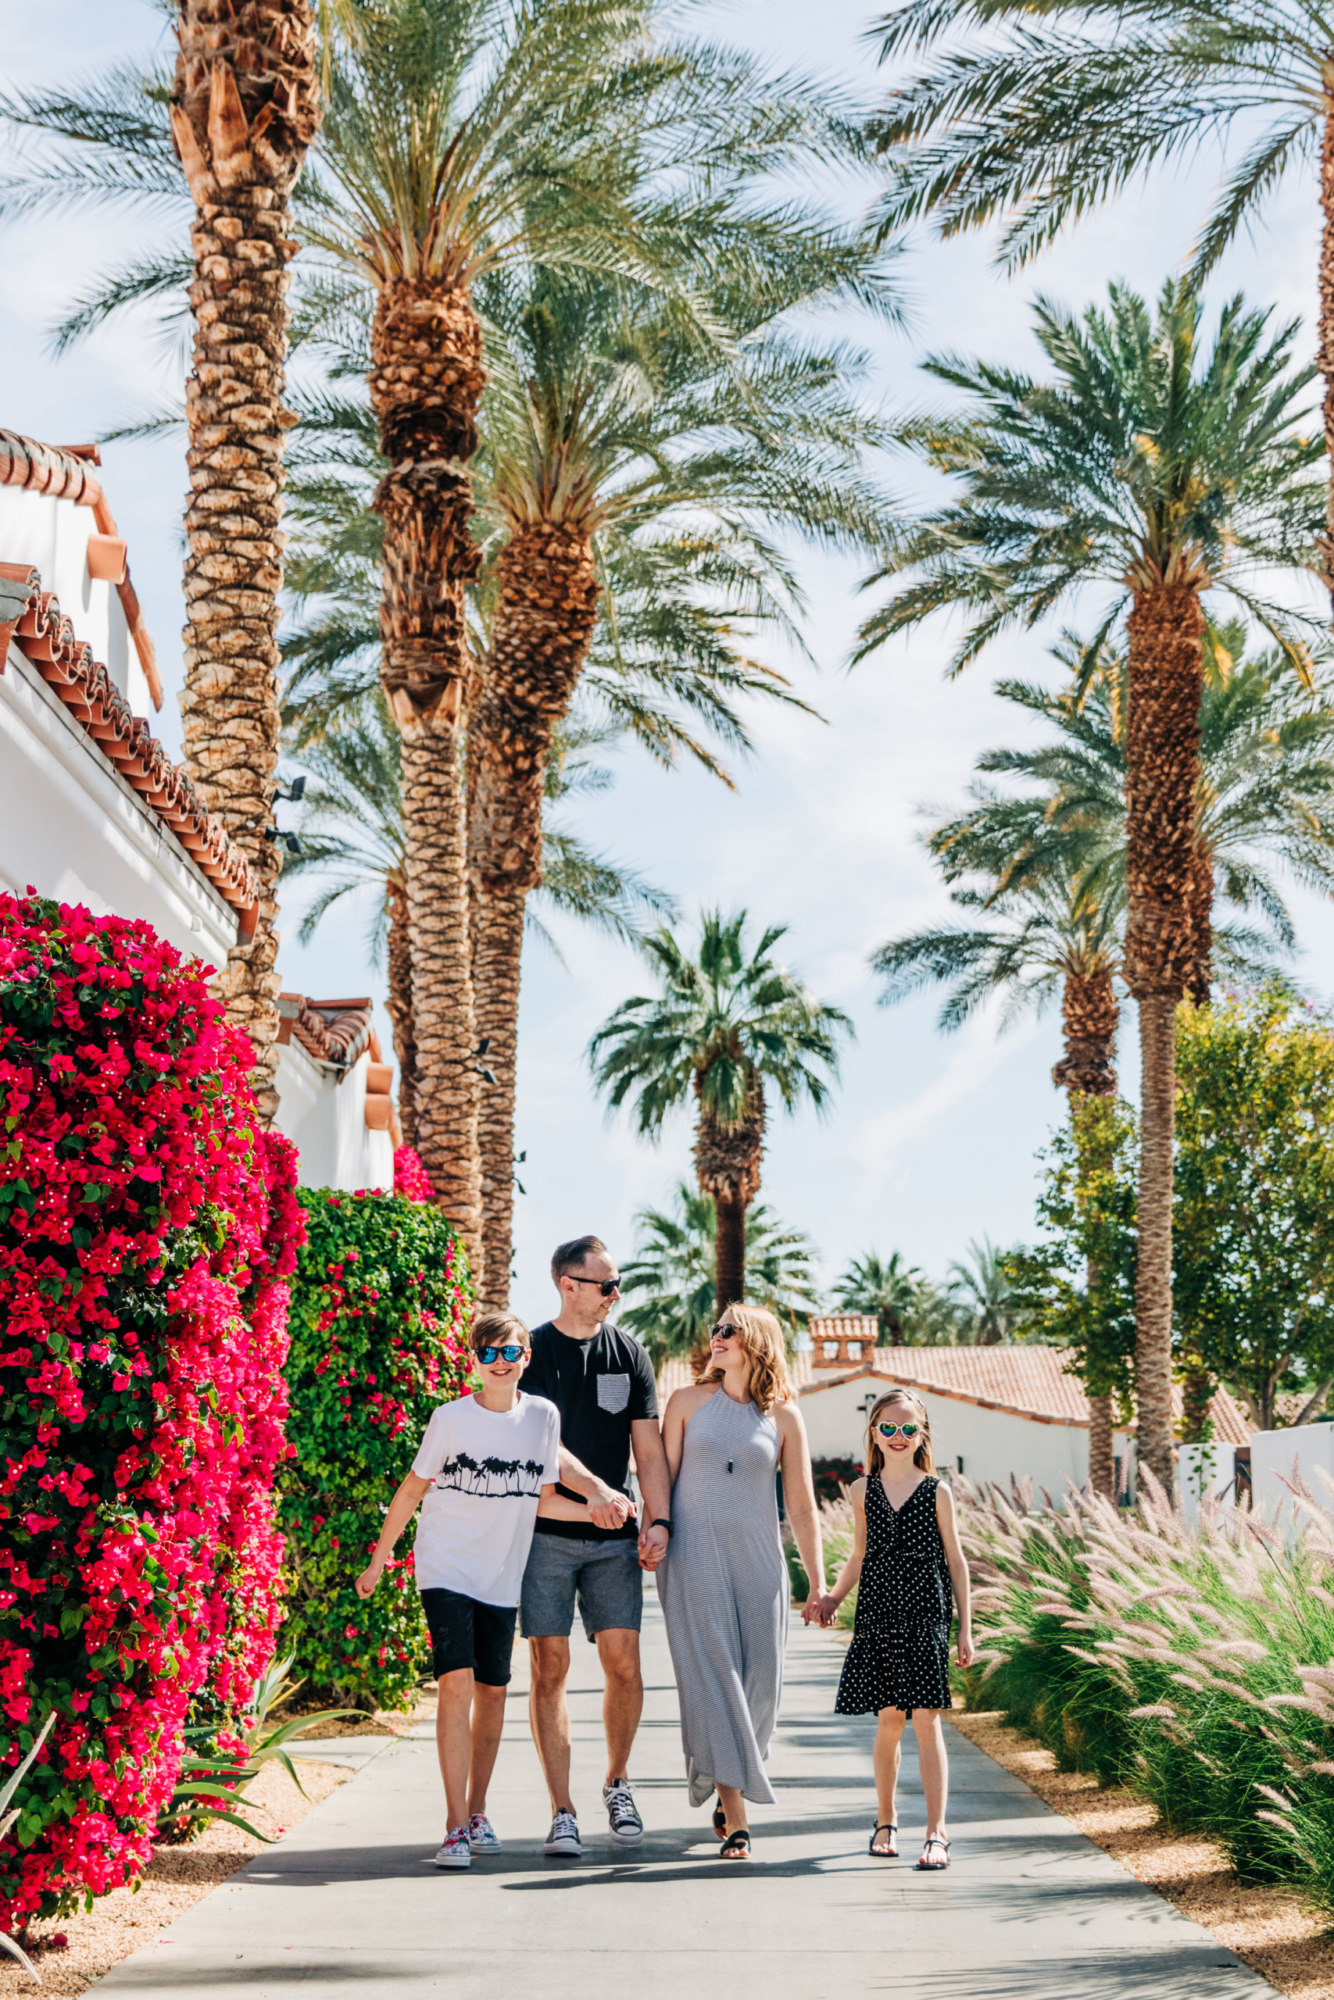 Capturing Palm Springs with Flytographer